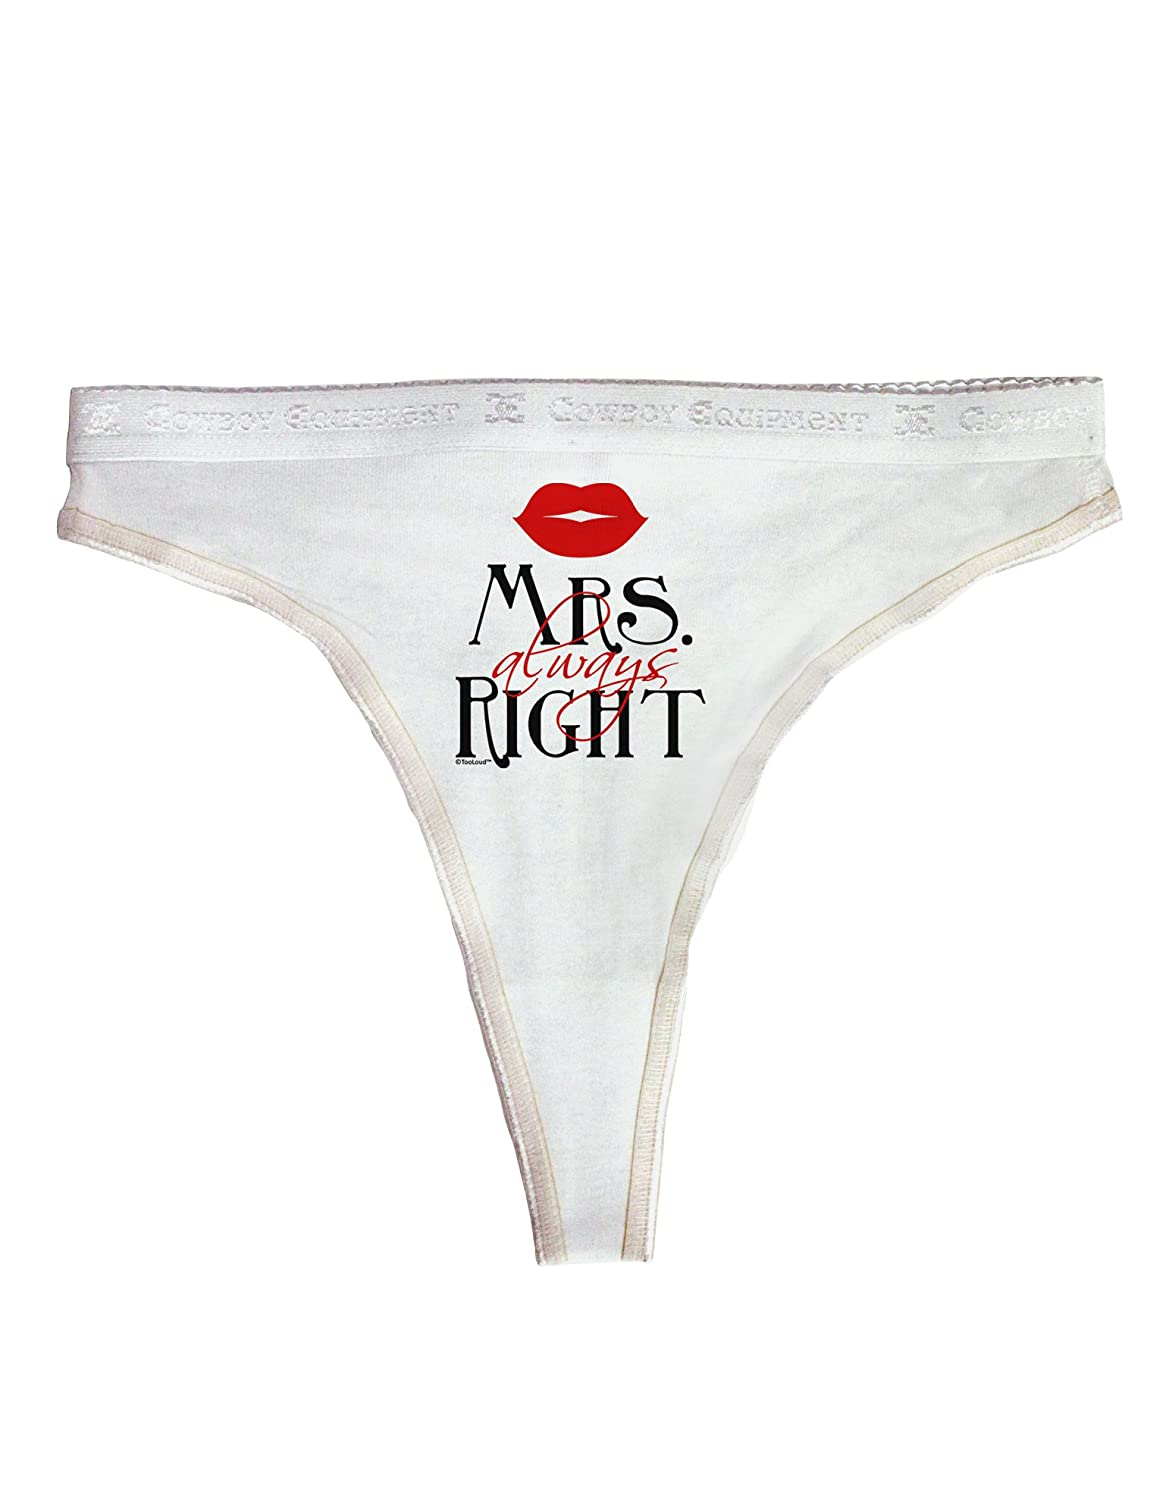 42600d2bce Amazon.com  TooLoud Matching Husband and Wife Designs - Mrs Always Right Womens  Thong Underwear - White - Medium  Clothing